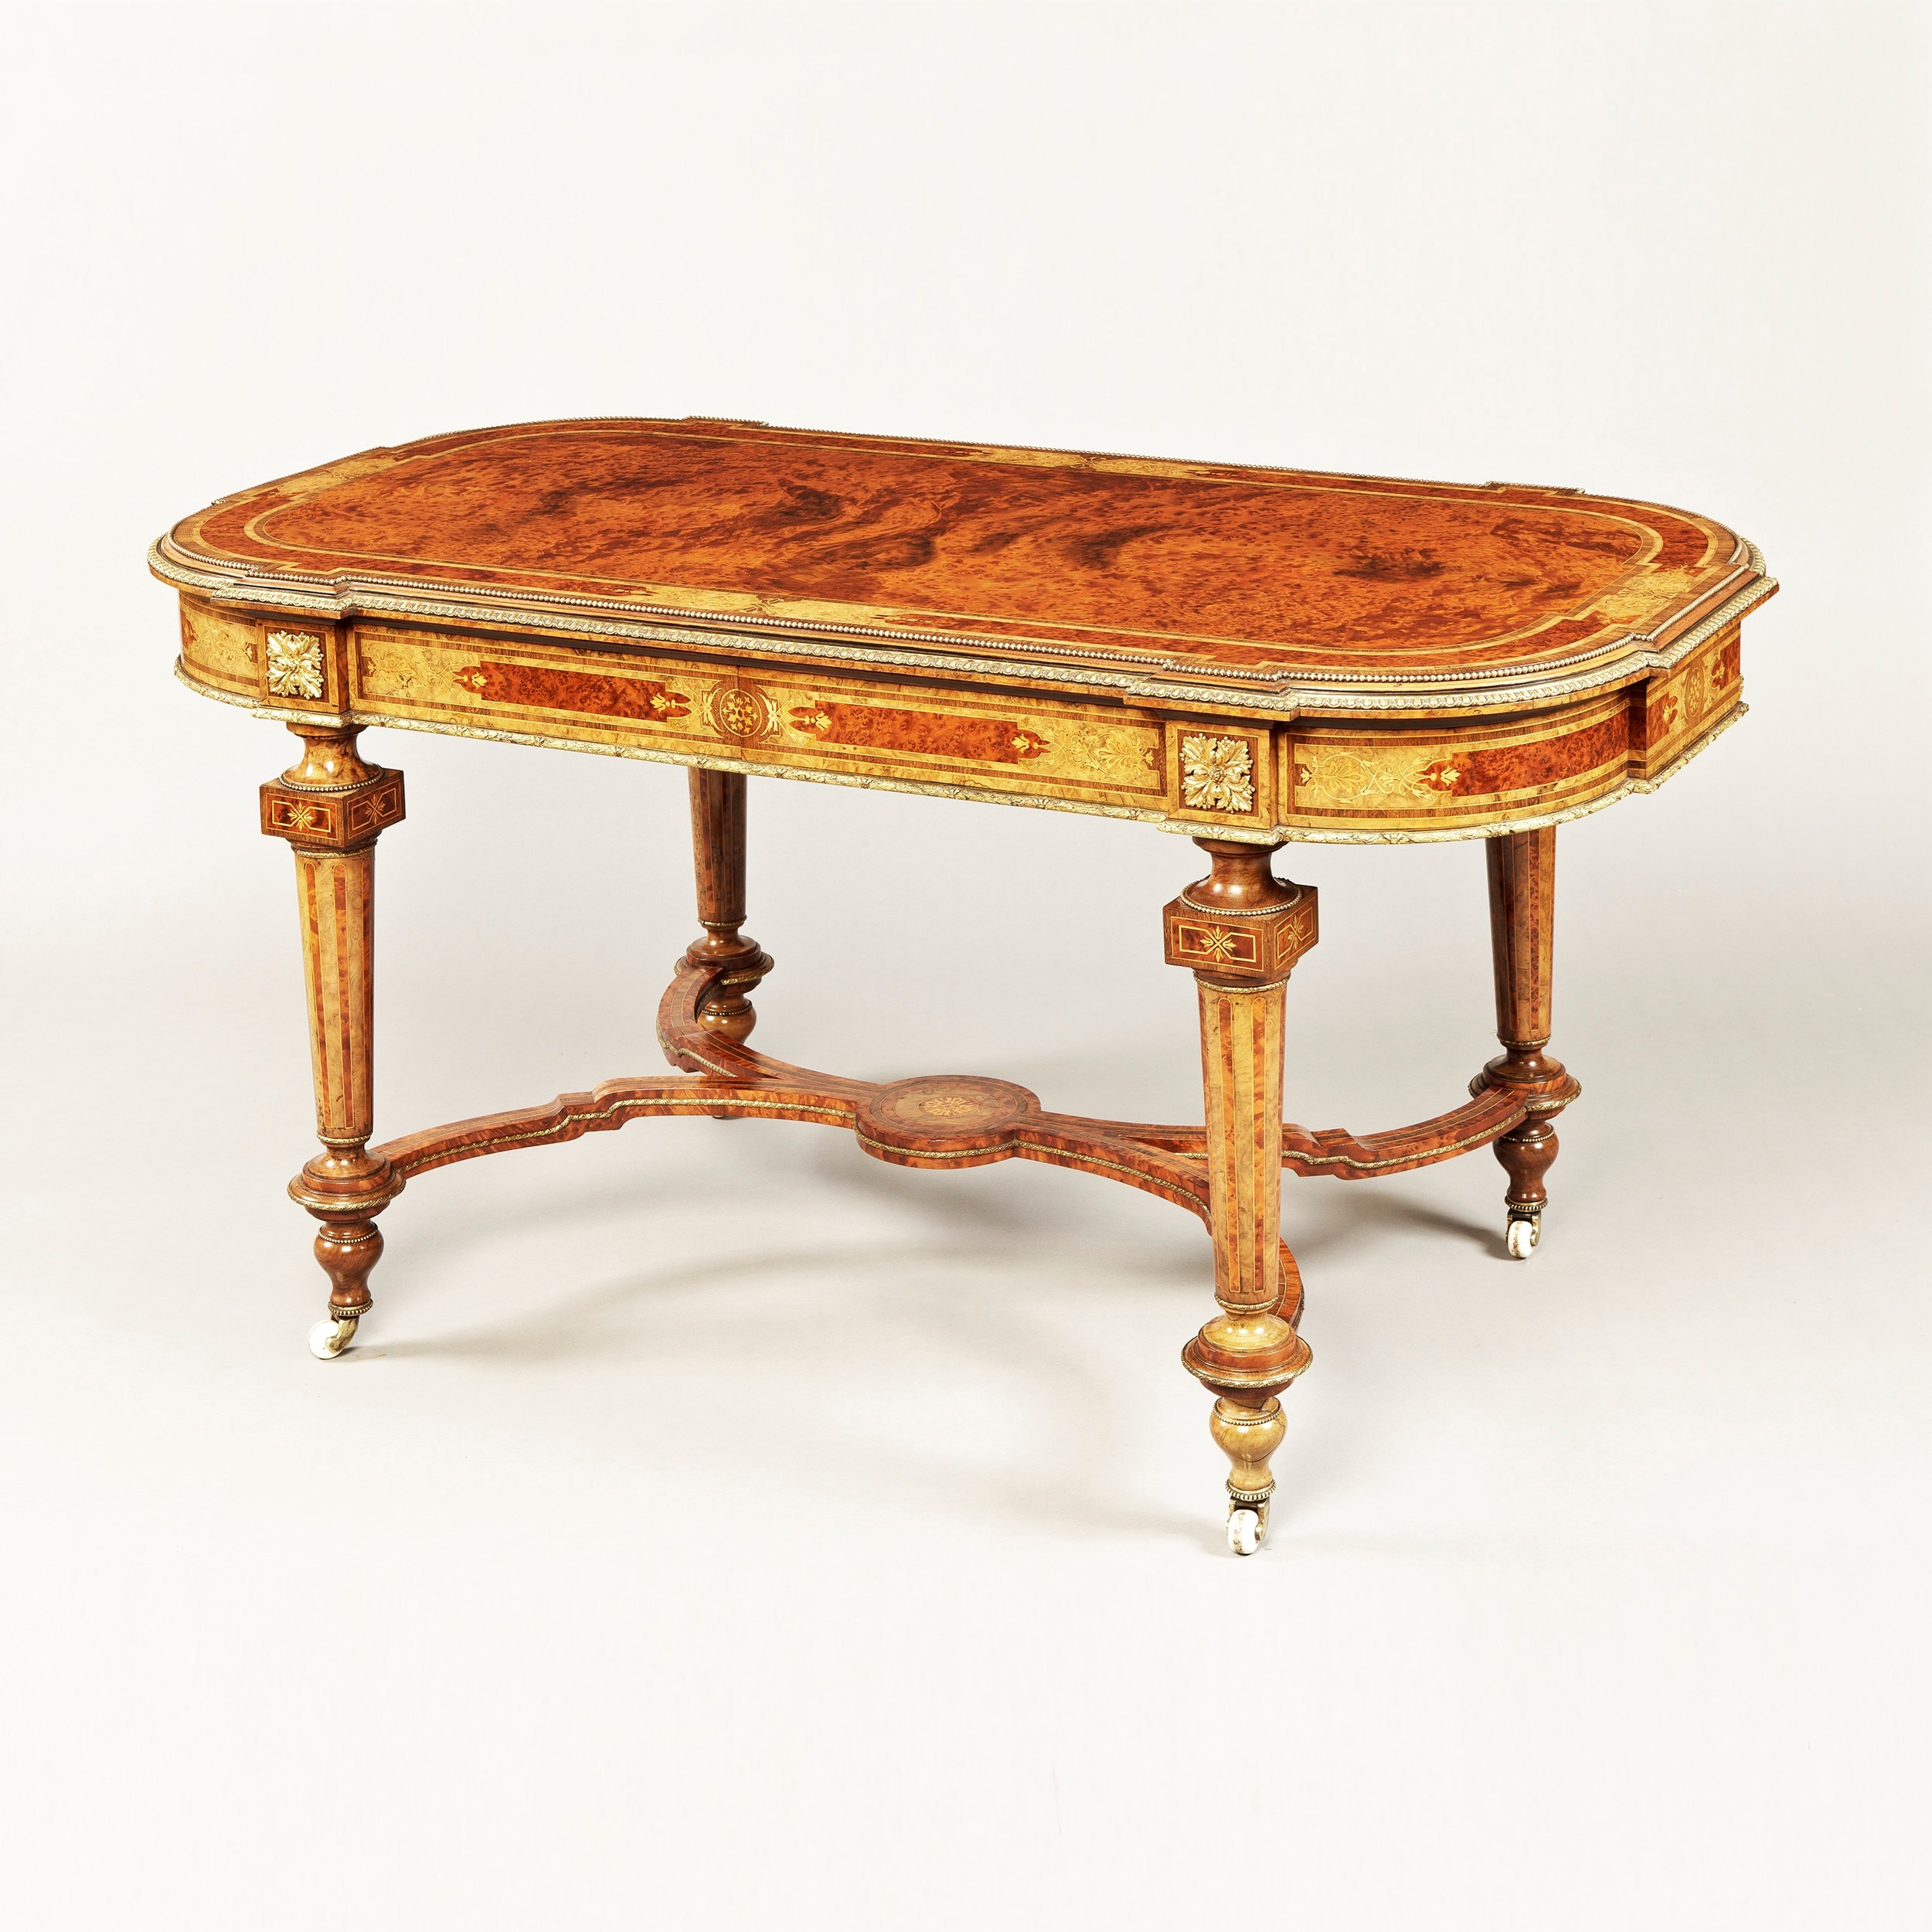 A Very Fine and Substantial Centre Table In the Louis XVIth Manner of Holland & Sons  Of exceptional quality, utilising beautifully grained woods, including Circassian walnut, thuya, purple heart and boxwood in the construction, and adorned with very finely cast, planished and gilded ormolu mounts; rising on four tapering turned and inlaid porcelain castor shod legs, conjoined by a shaped and stepped 'X' form stretcher, with a central vase stand, inlaid with a circular patera; the symmetrical shaped serpentine cross banded and inlaid top, richly dressed with ormolu running pearl banding and to the edges, a stylised ormolu gadroon; the apron housing two drawers, lined with quadrant mouldings  Circa 1850  Dimensions: H: 30 in / 76.5 cm   W: 60 in / 152.5 cm   D: 32 in / 81.5 cm  Provenance; Whitbourne Hall, Worcester  Family tradition believes the table was supplied by the London decorators, Cowtan & Company, who were absorbed into Colefax & Fowler in the 1970s.  Please see Symonds & Whineray, Victorian Furniture pages 169 and 187 illustrations of similar items of furniture  Ref 7874